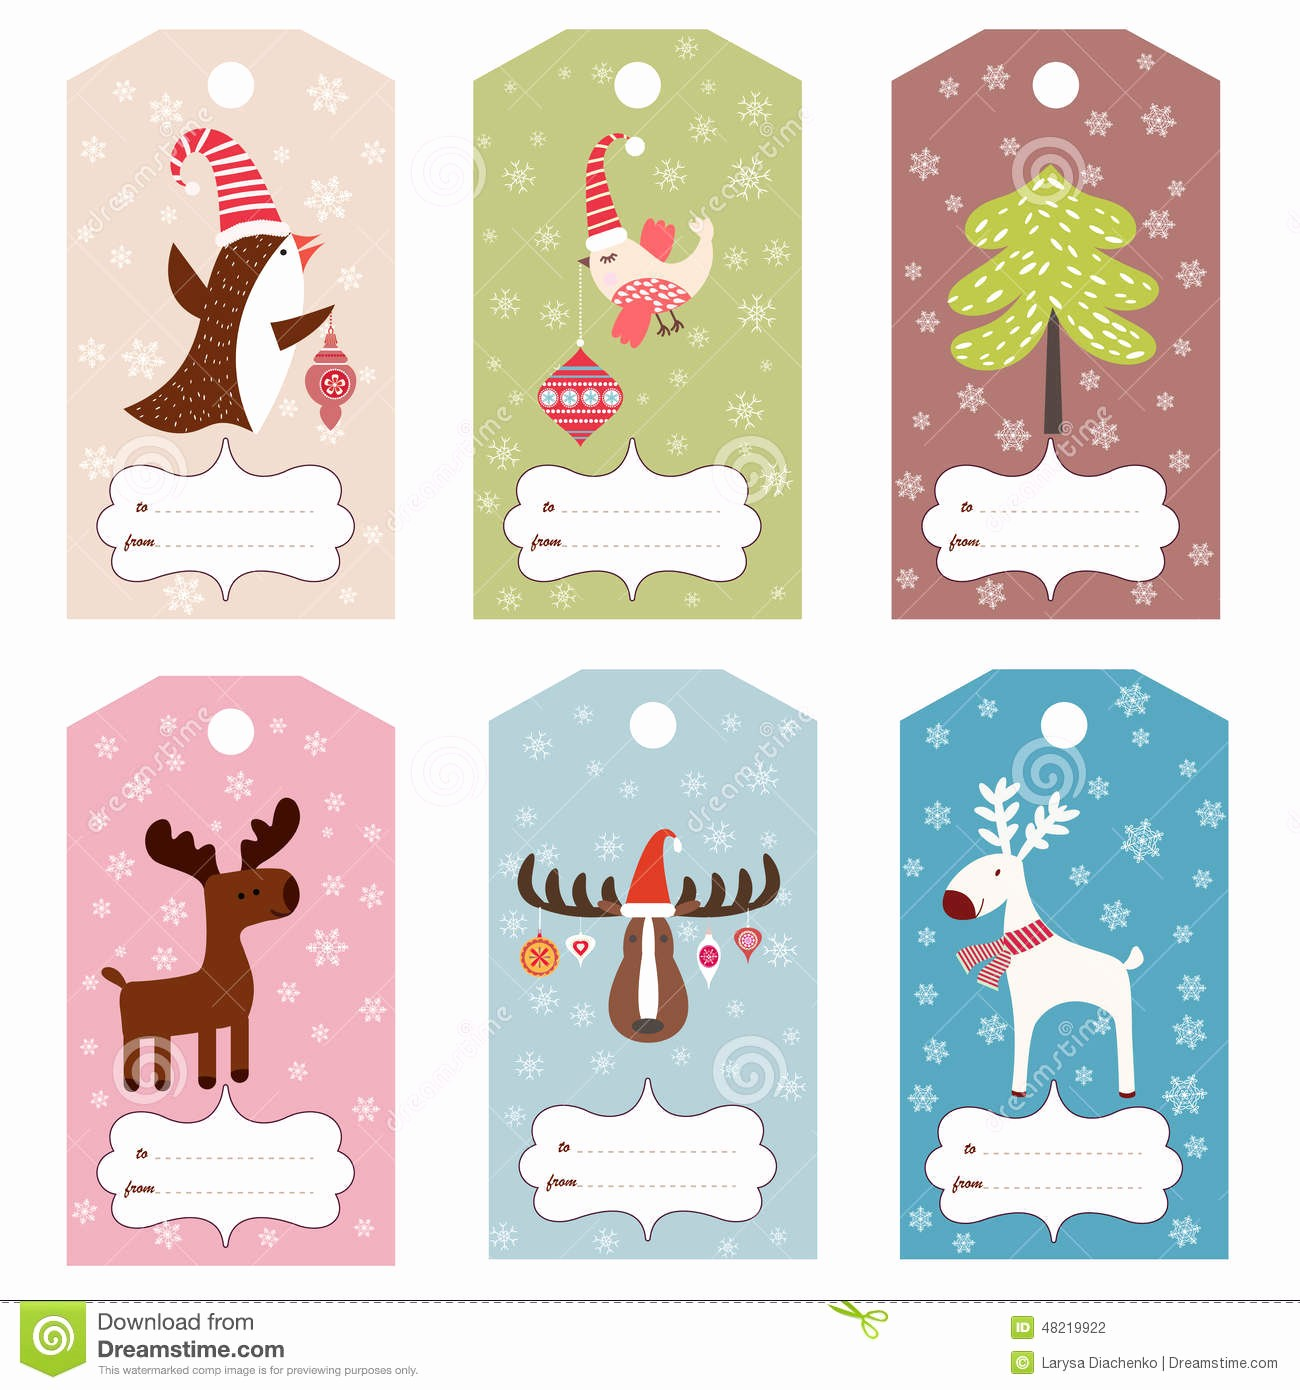 Template for Tags for Gifts Inspirational Set Of Winter T Tags Stock Vector Illustration Of